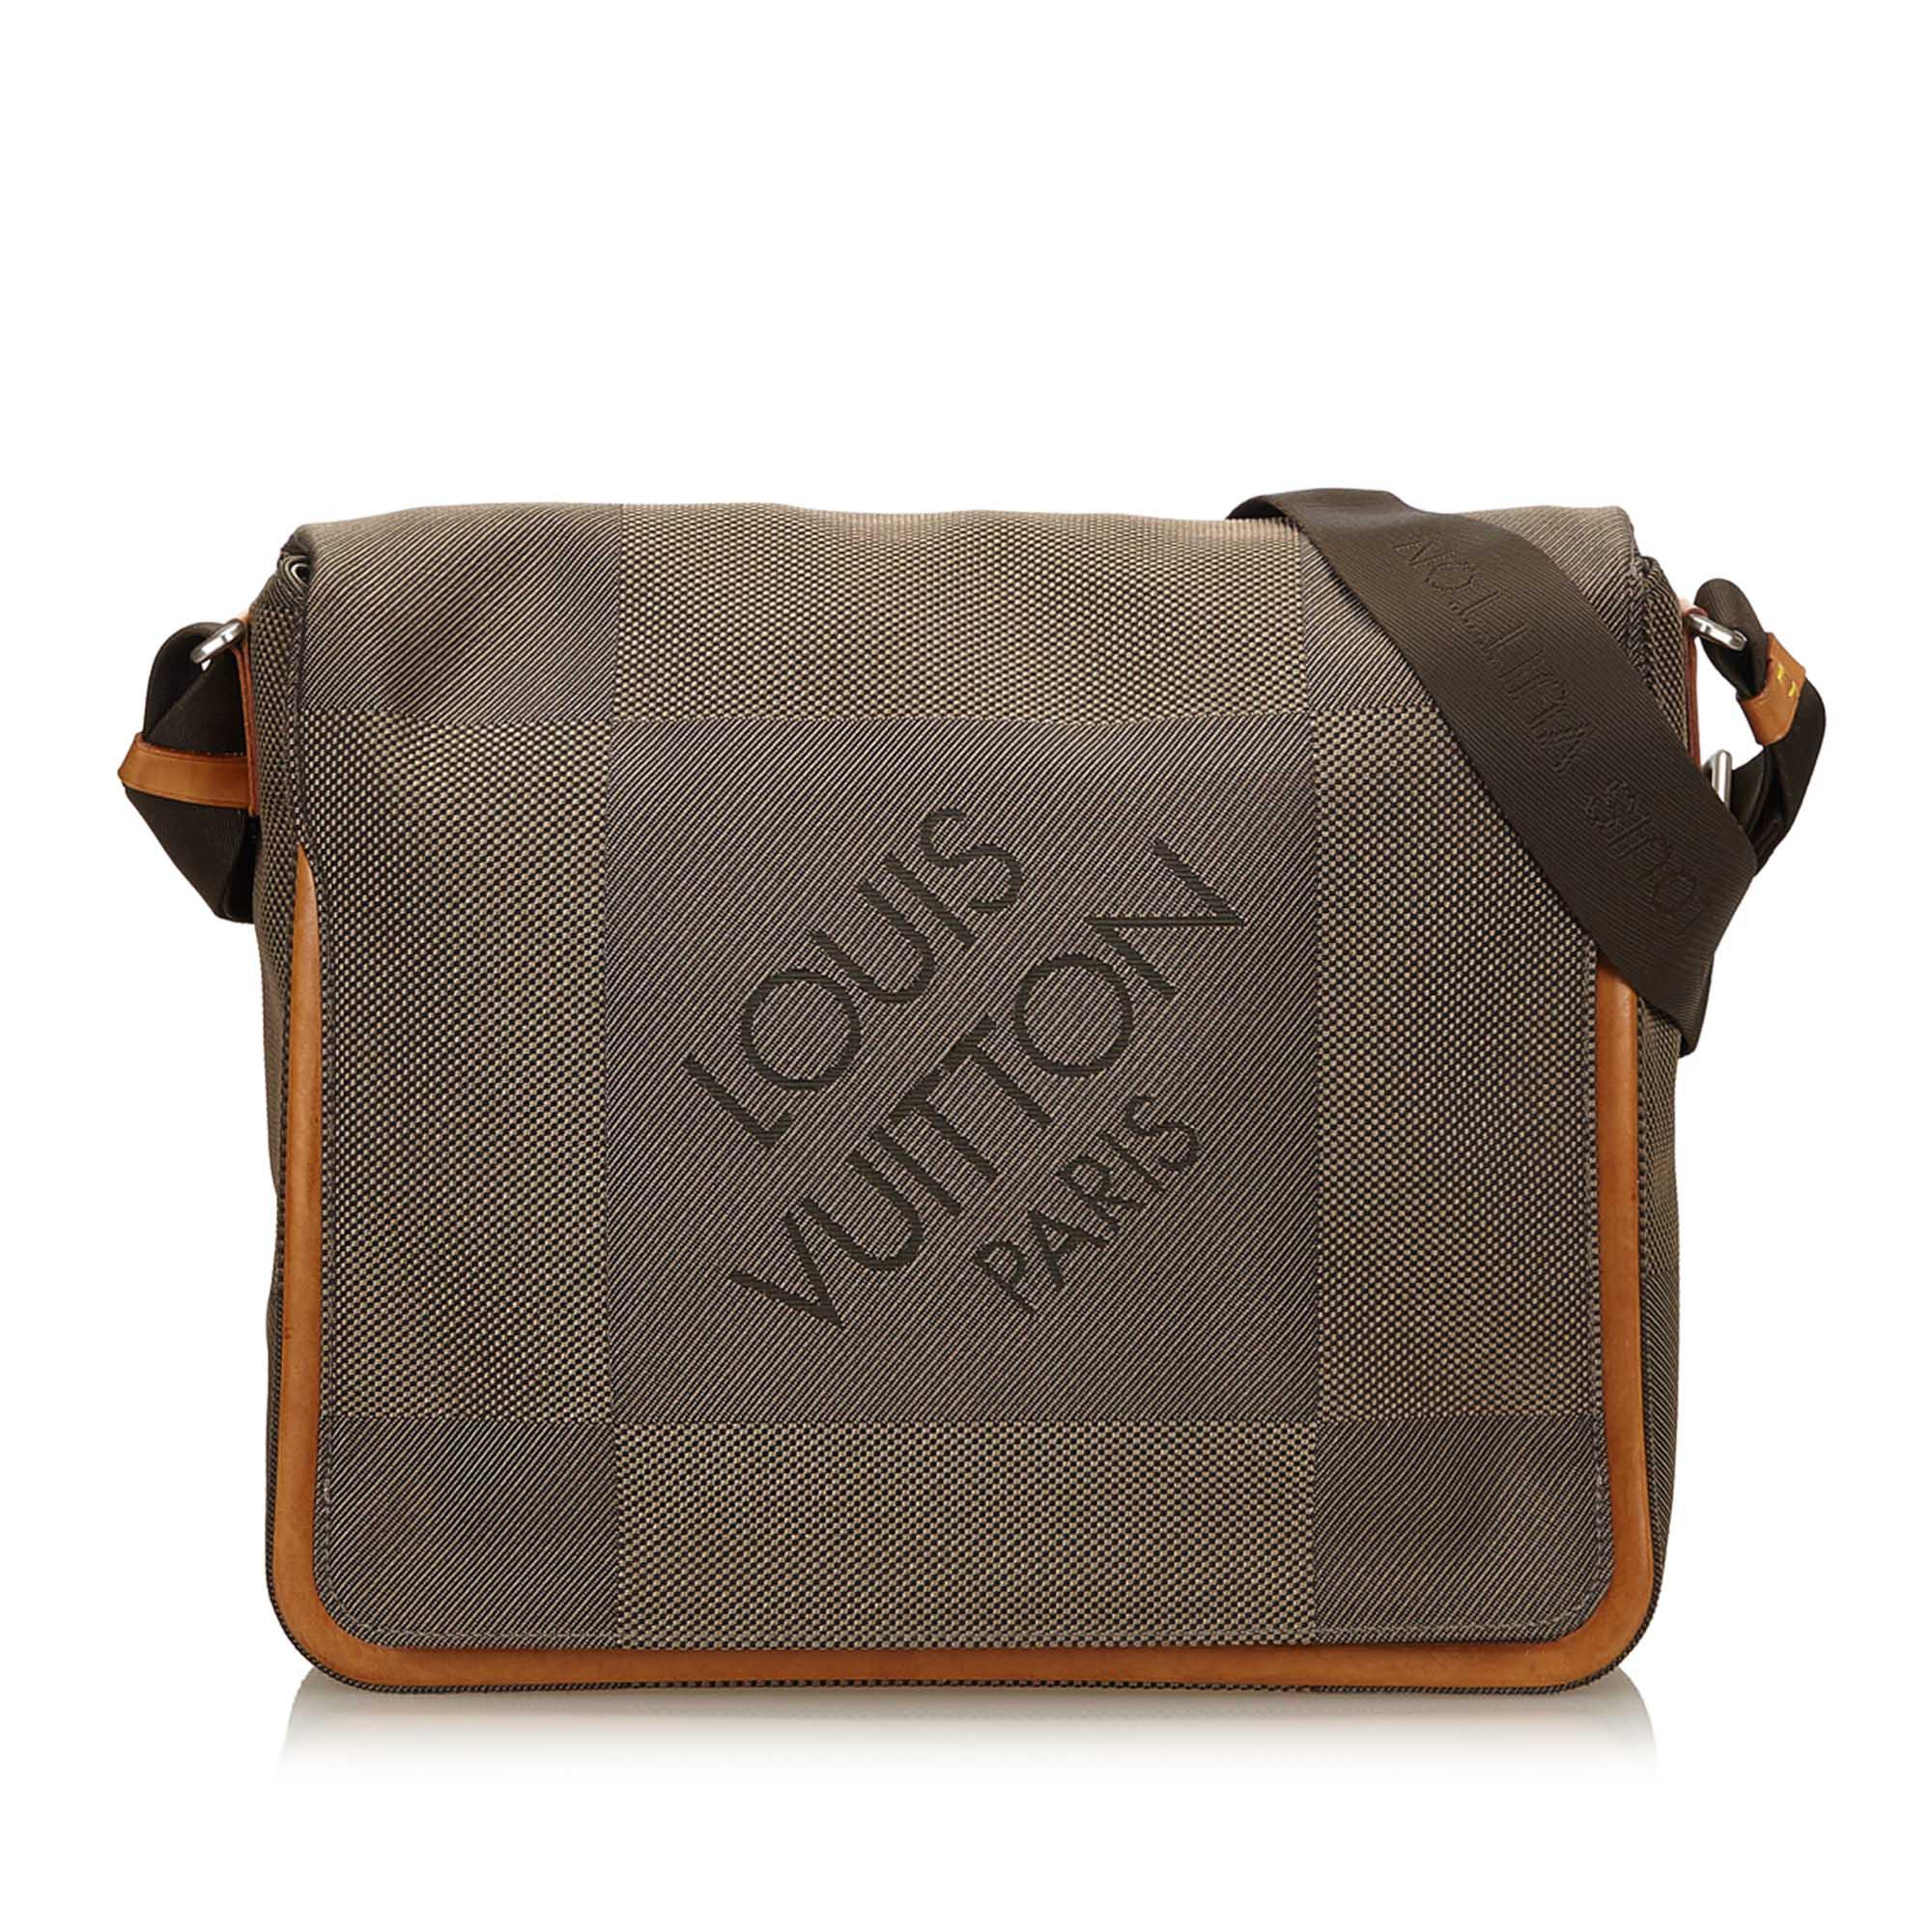 dd692d9e1f66 Louis Vuitton - Brown Terre Damier Geant Canvas Messenger Bag - Lyst. View  fullscreen